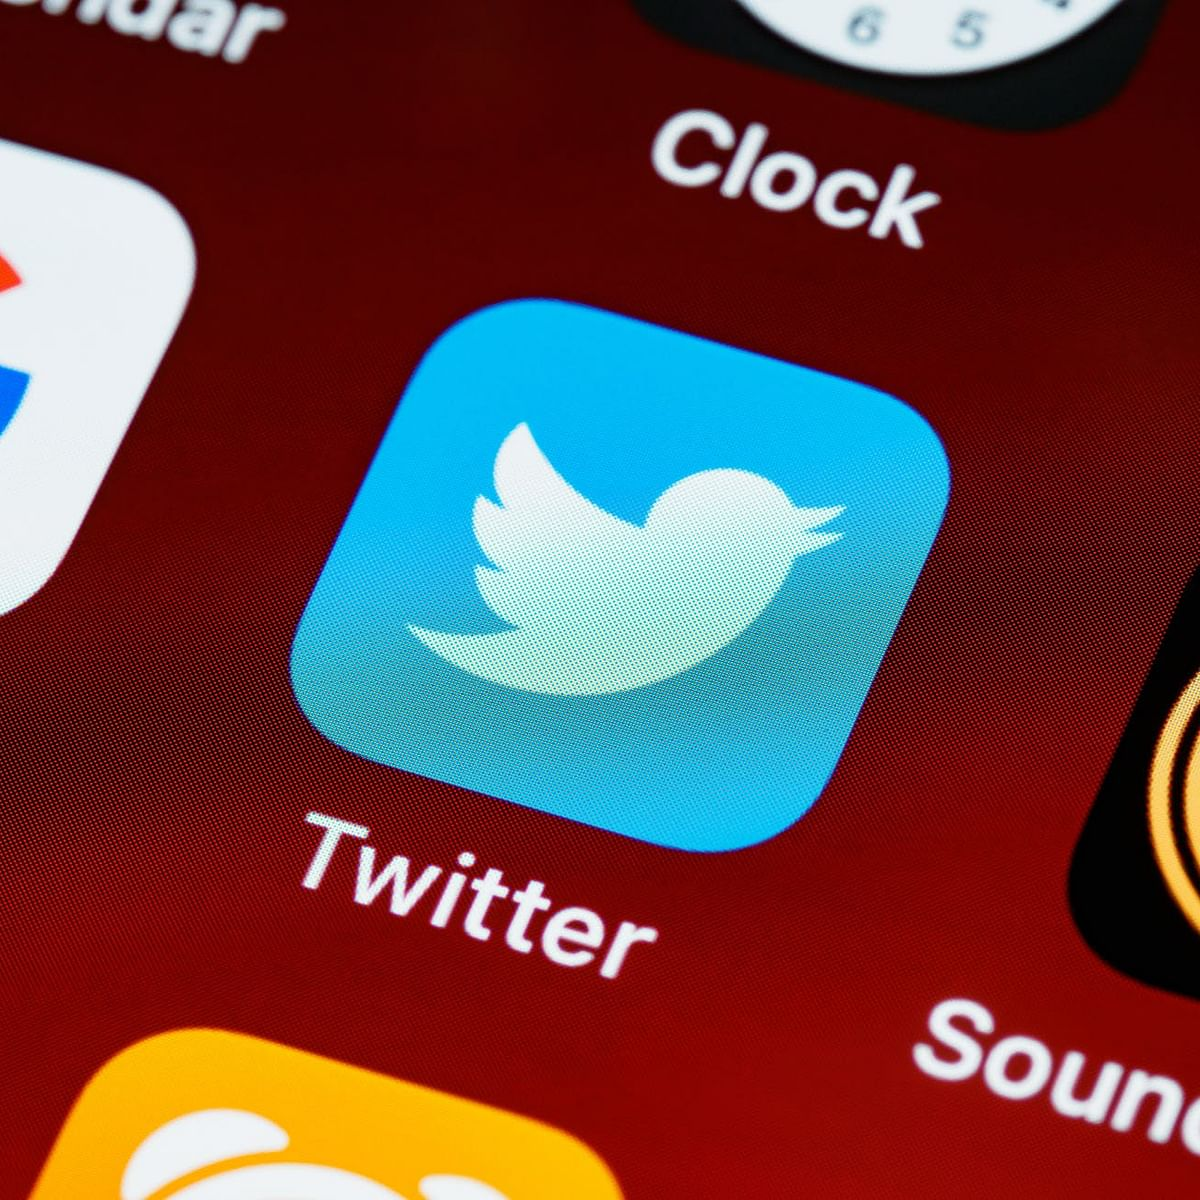 Twitter vs Govt: As demand to ban social media giant grows, here is what each side says